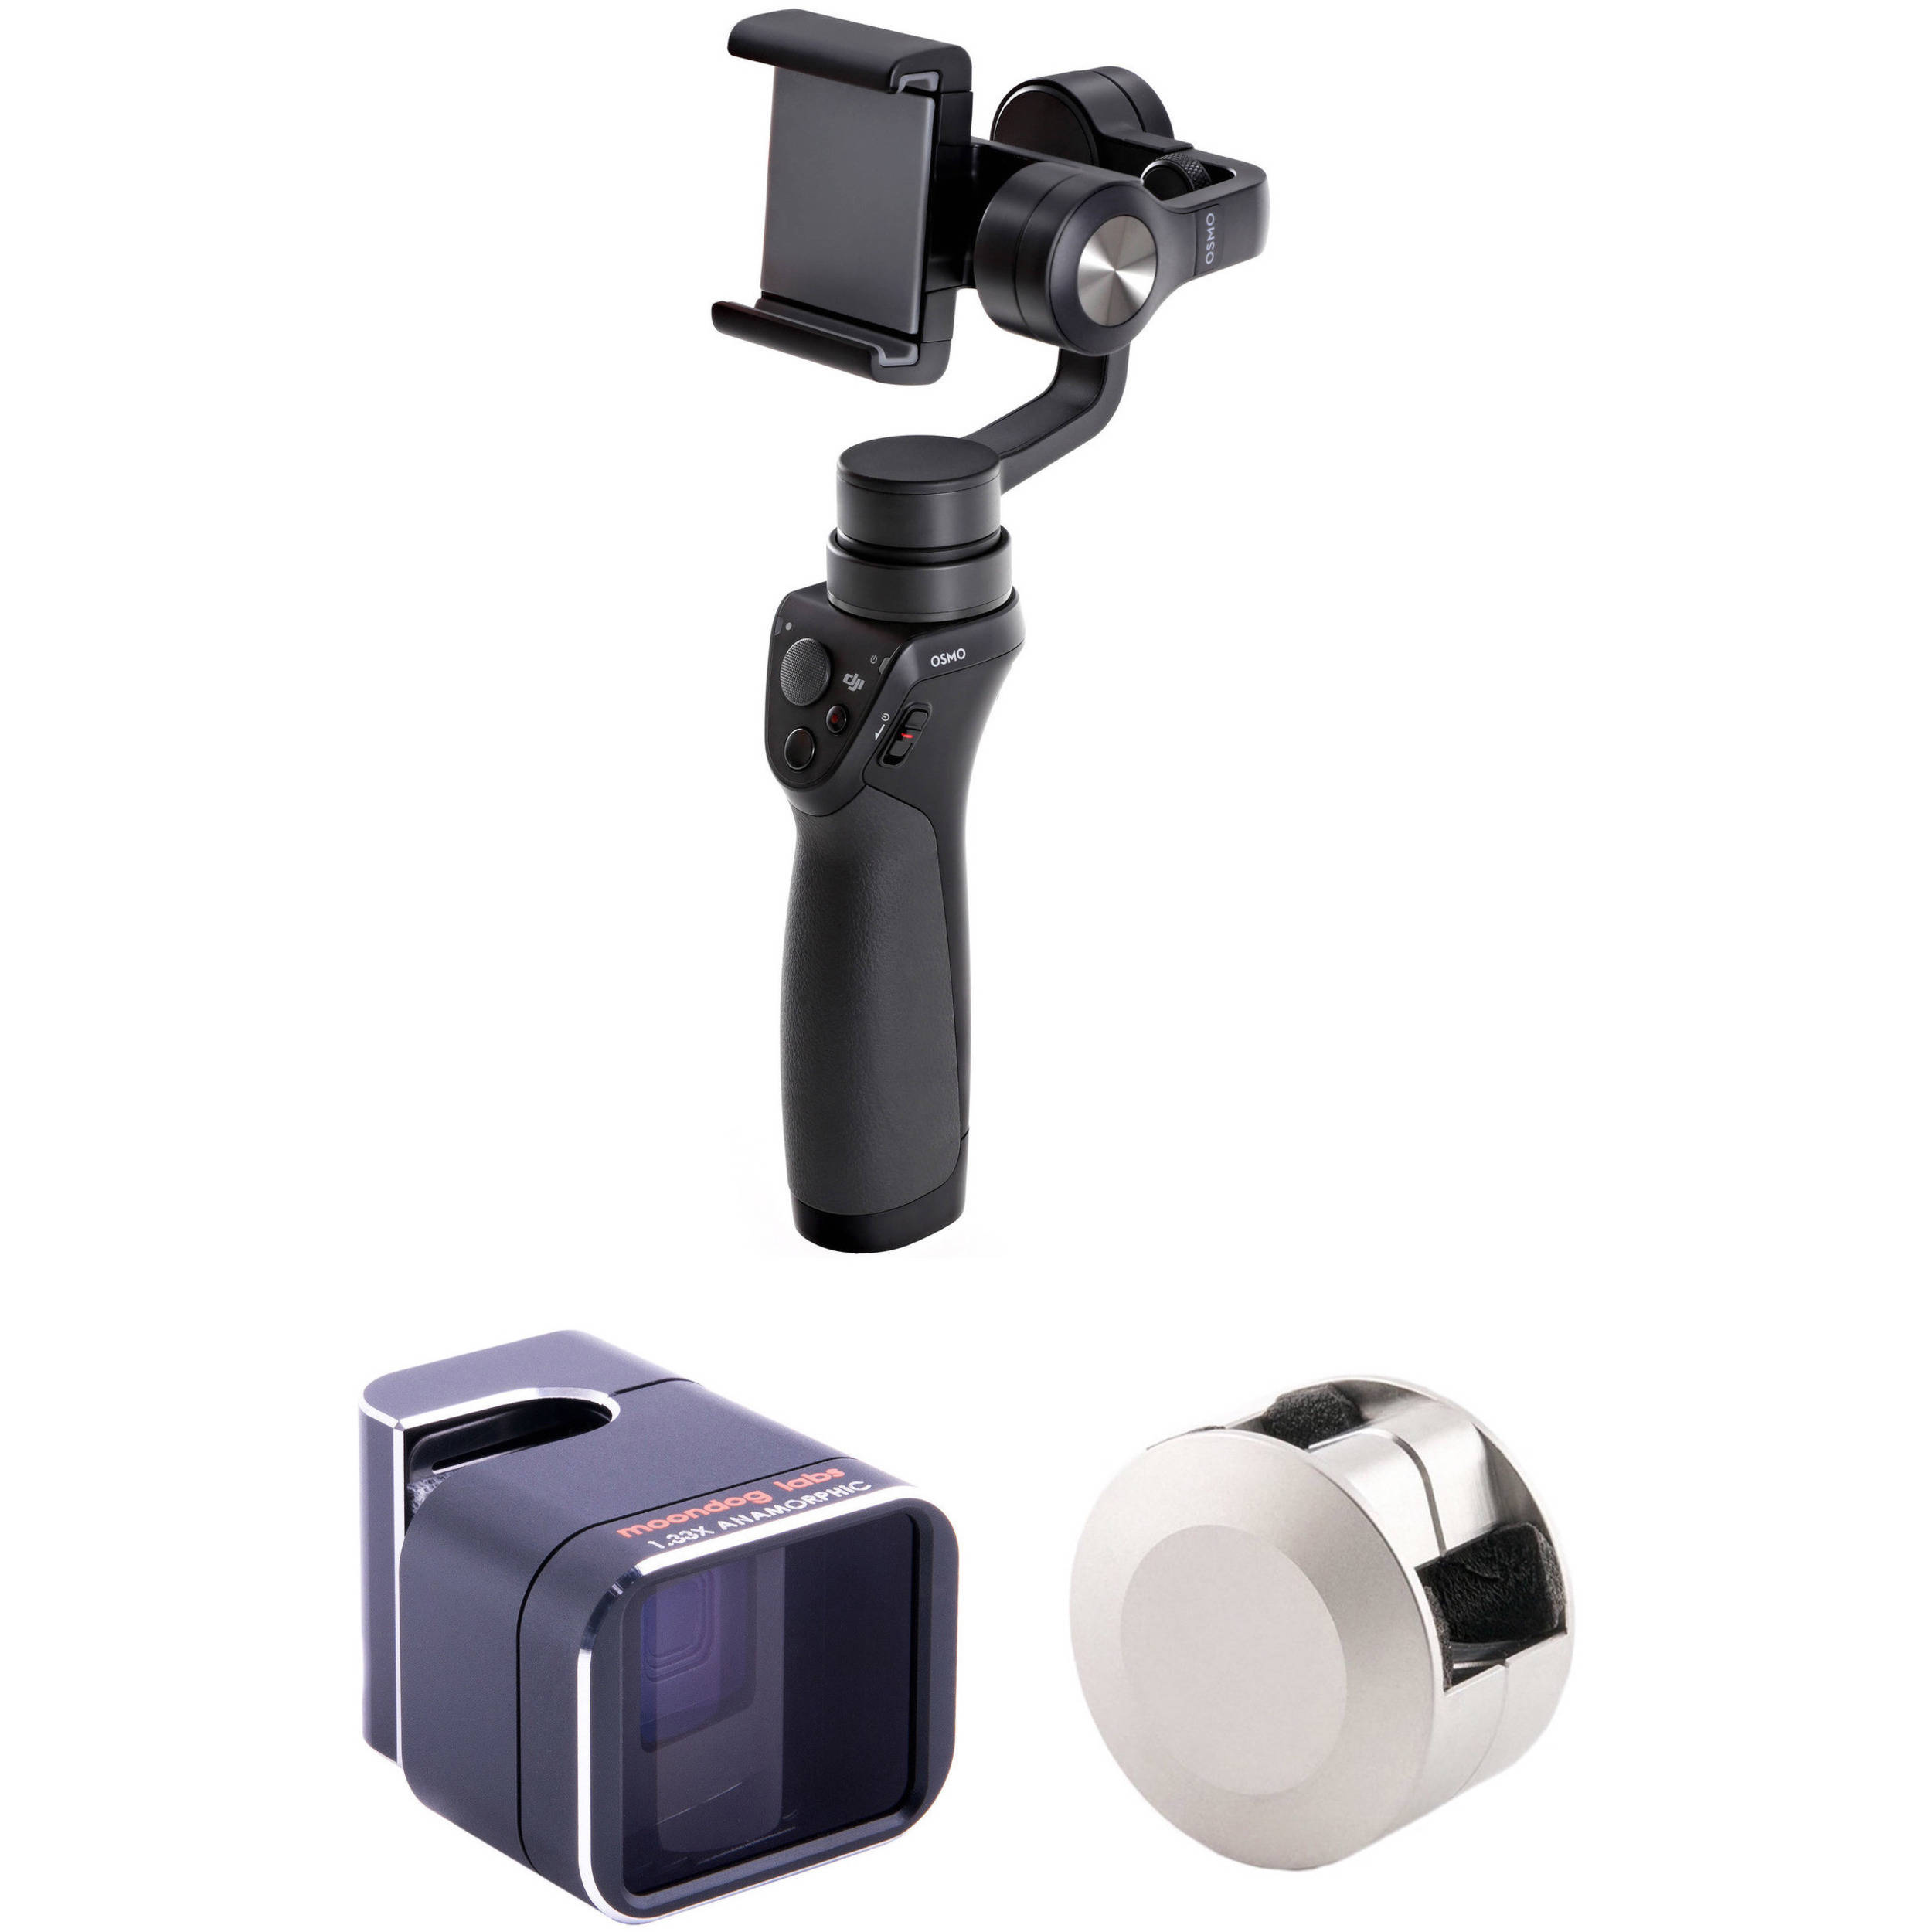 official photos e717b 4b038 DJI Osmo Mobile with Adapter Lens Kit for iPhone 6 Plus/6s Plus